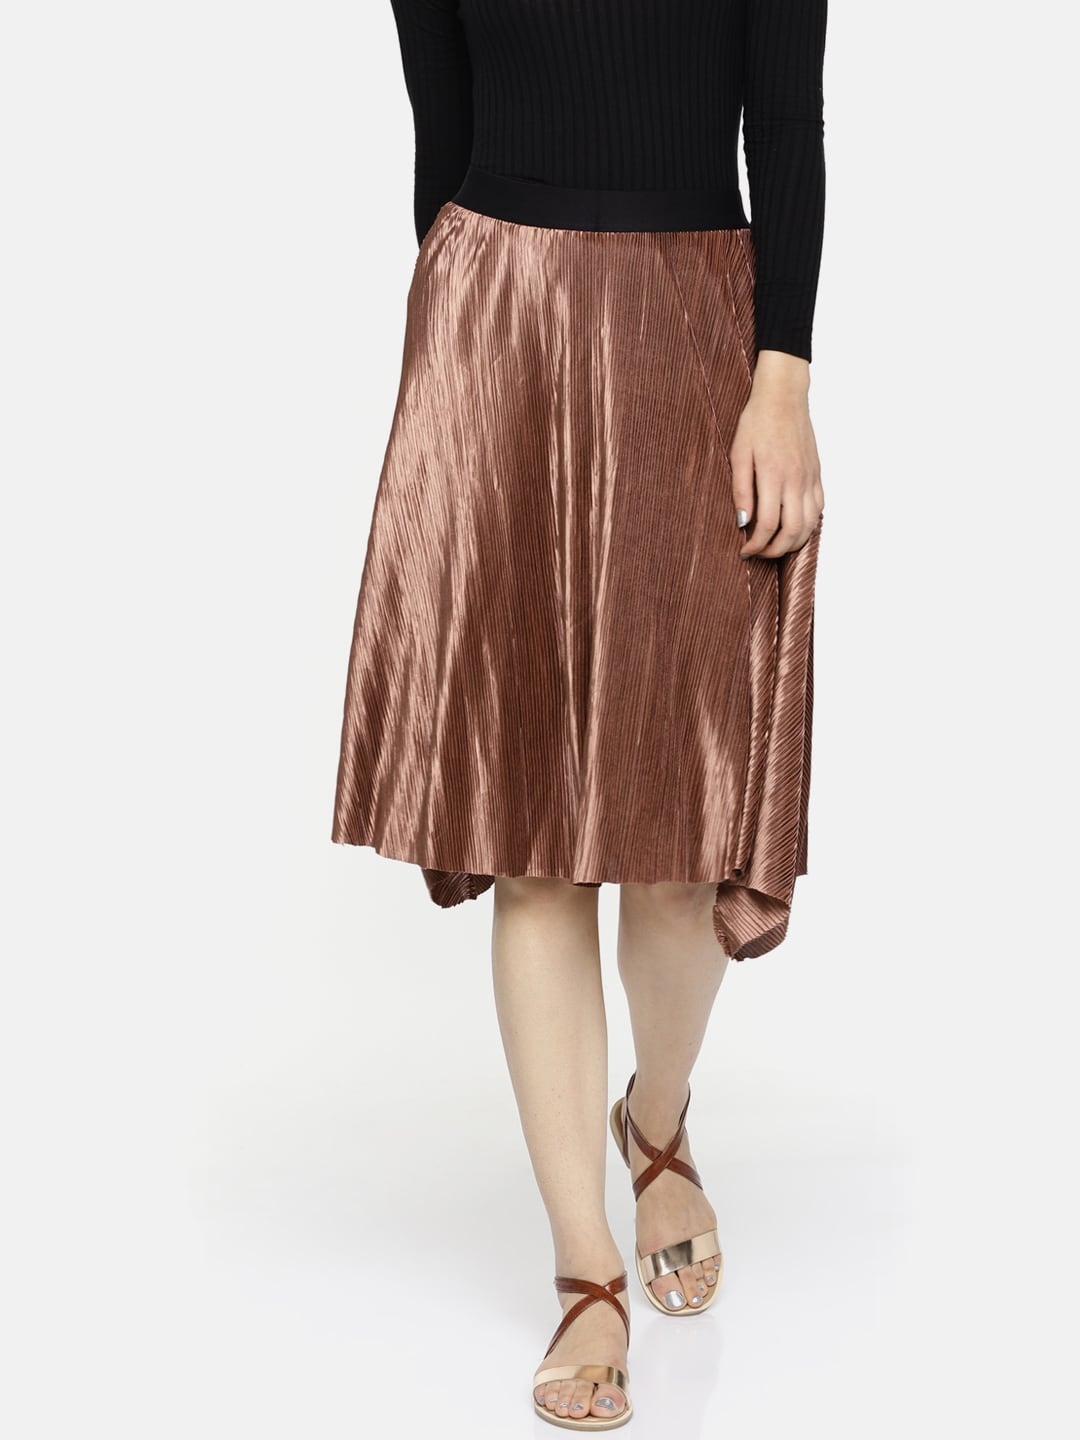 fd82ee664b6134 Skirts   Shorts for Women - Buy Ladies Shorts   Skirts Online - Myntra